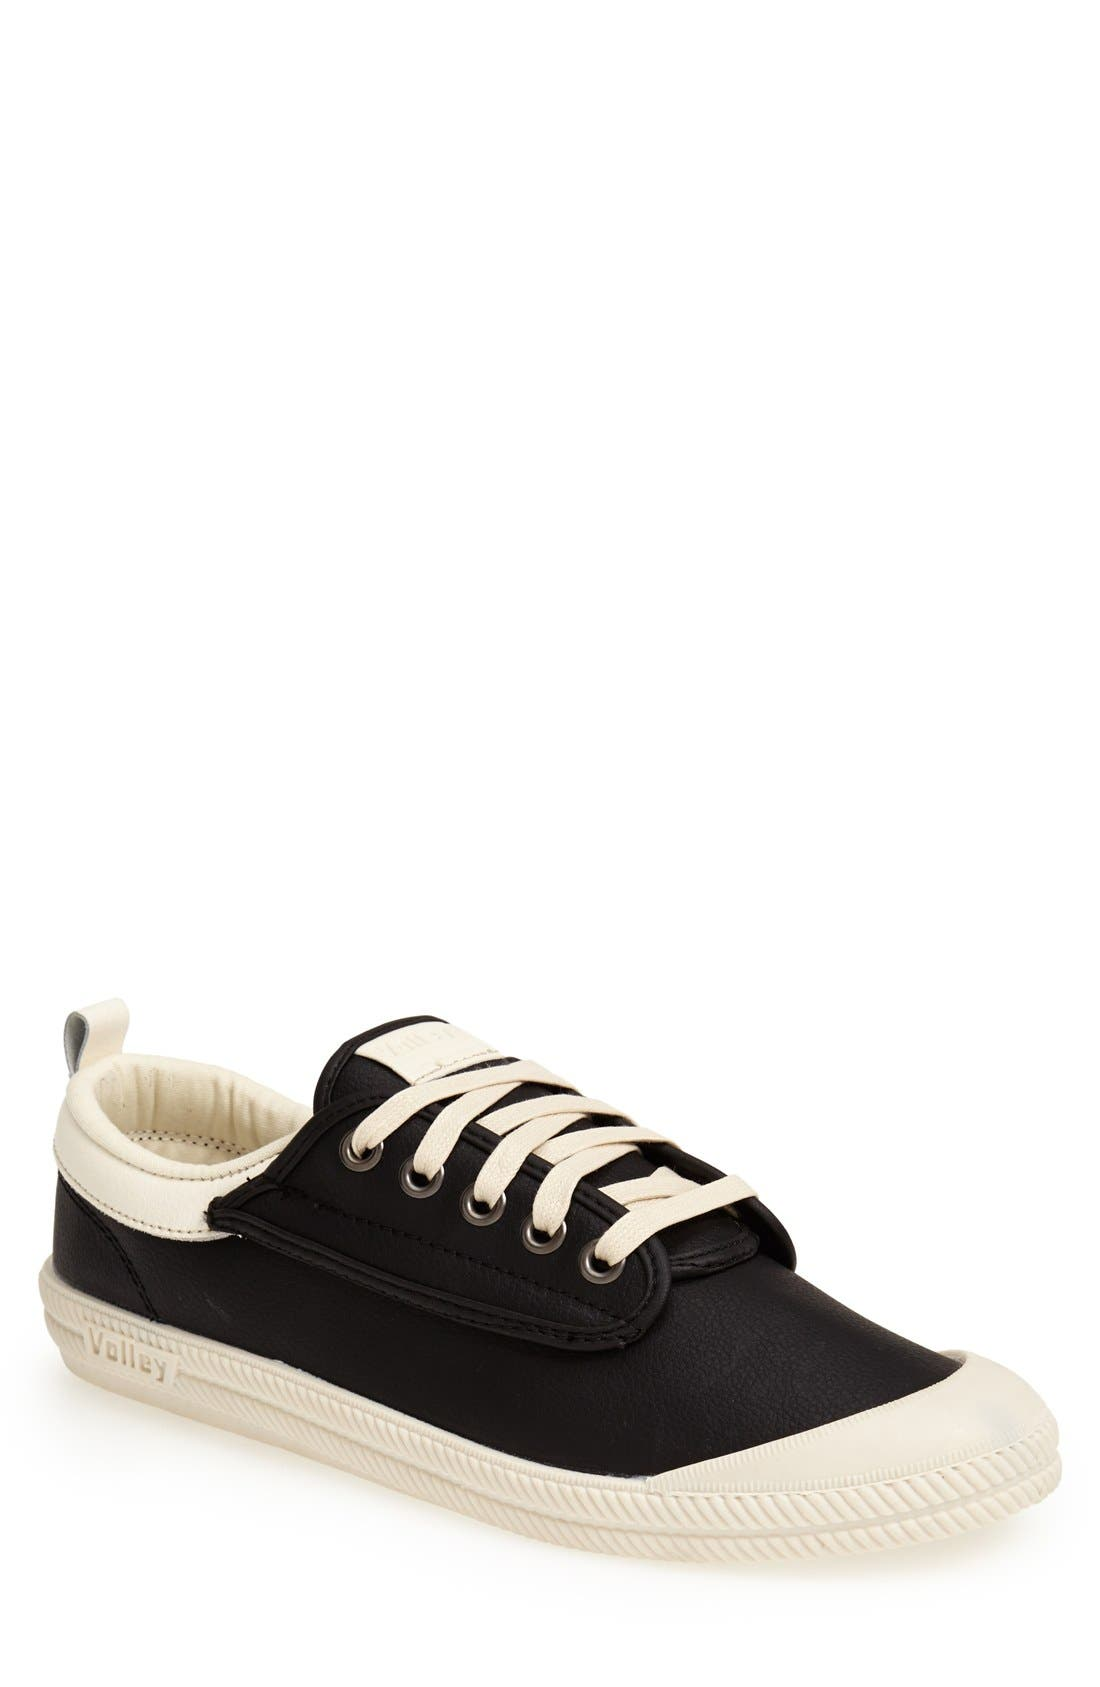 'International' Leather Sneaker,                             Main thumbnail 1, color,                             015